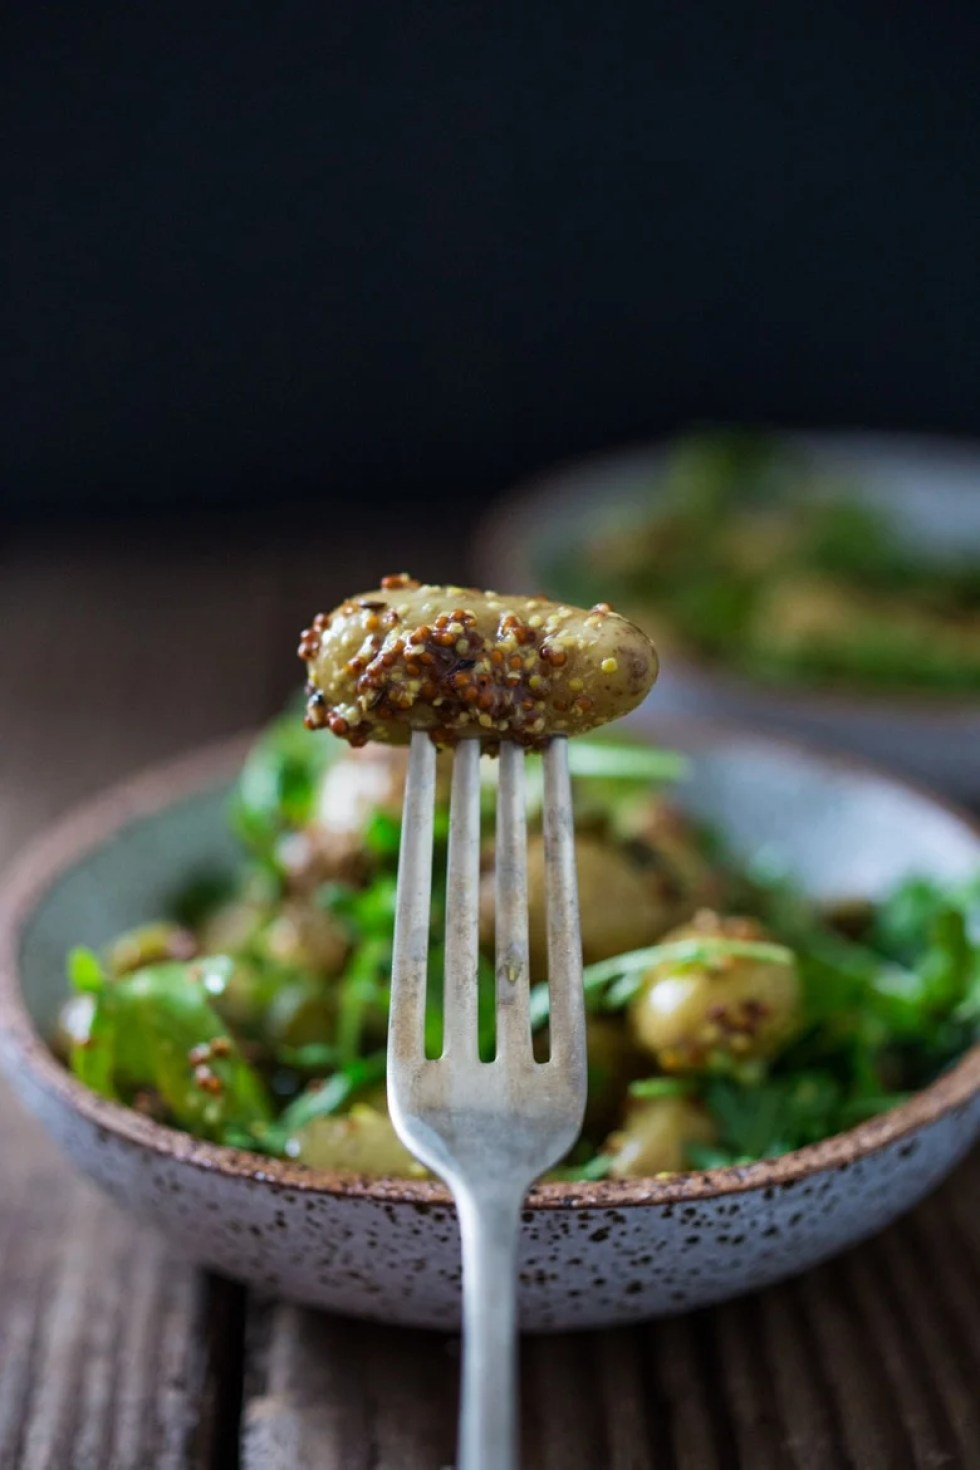 This Warm Potato Salad with Mustard Seed Dressing, cornishons (baby pickles) and baby arugula is a healthy, simple and lightway to serve up your favorite root vegetable! Serve it w/ Salmon for a light dinner or chopped chicken breast for a satisfying lunch!   www.feastingathome.com